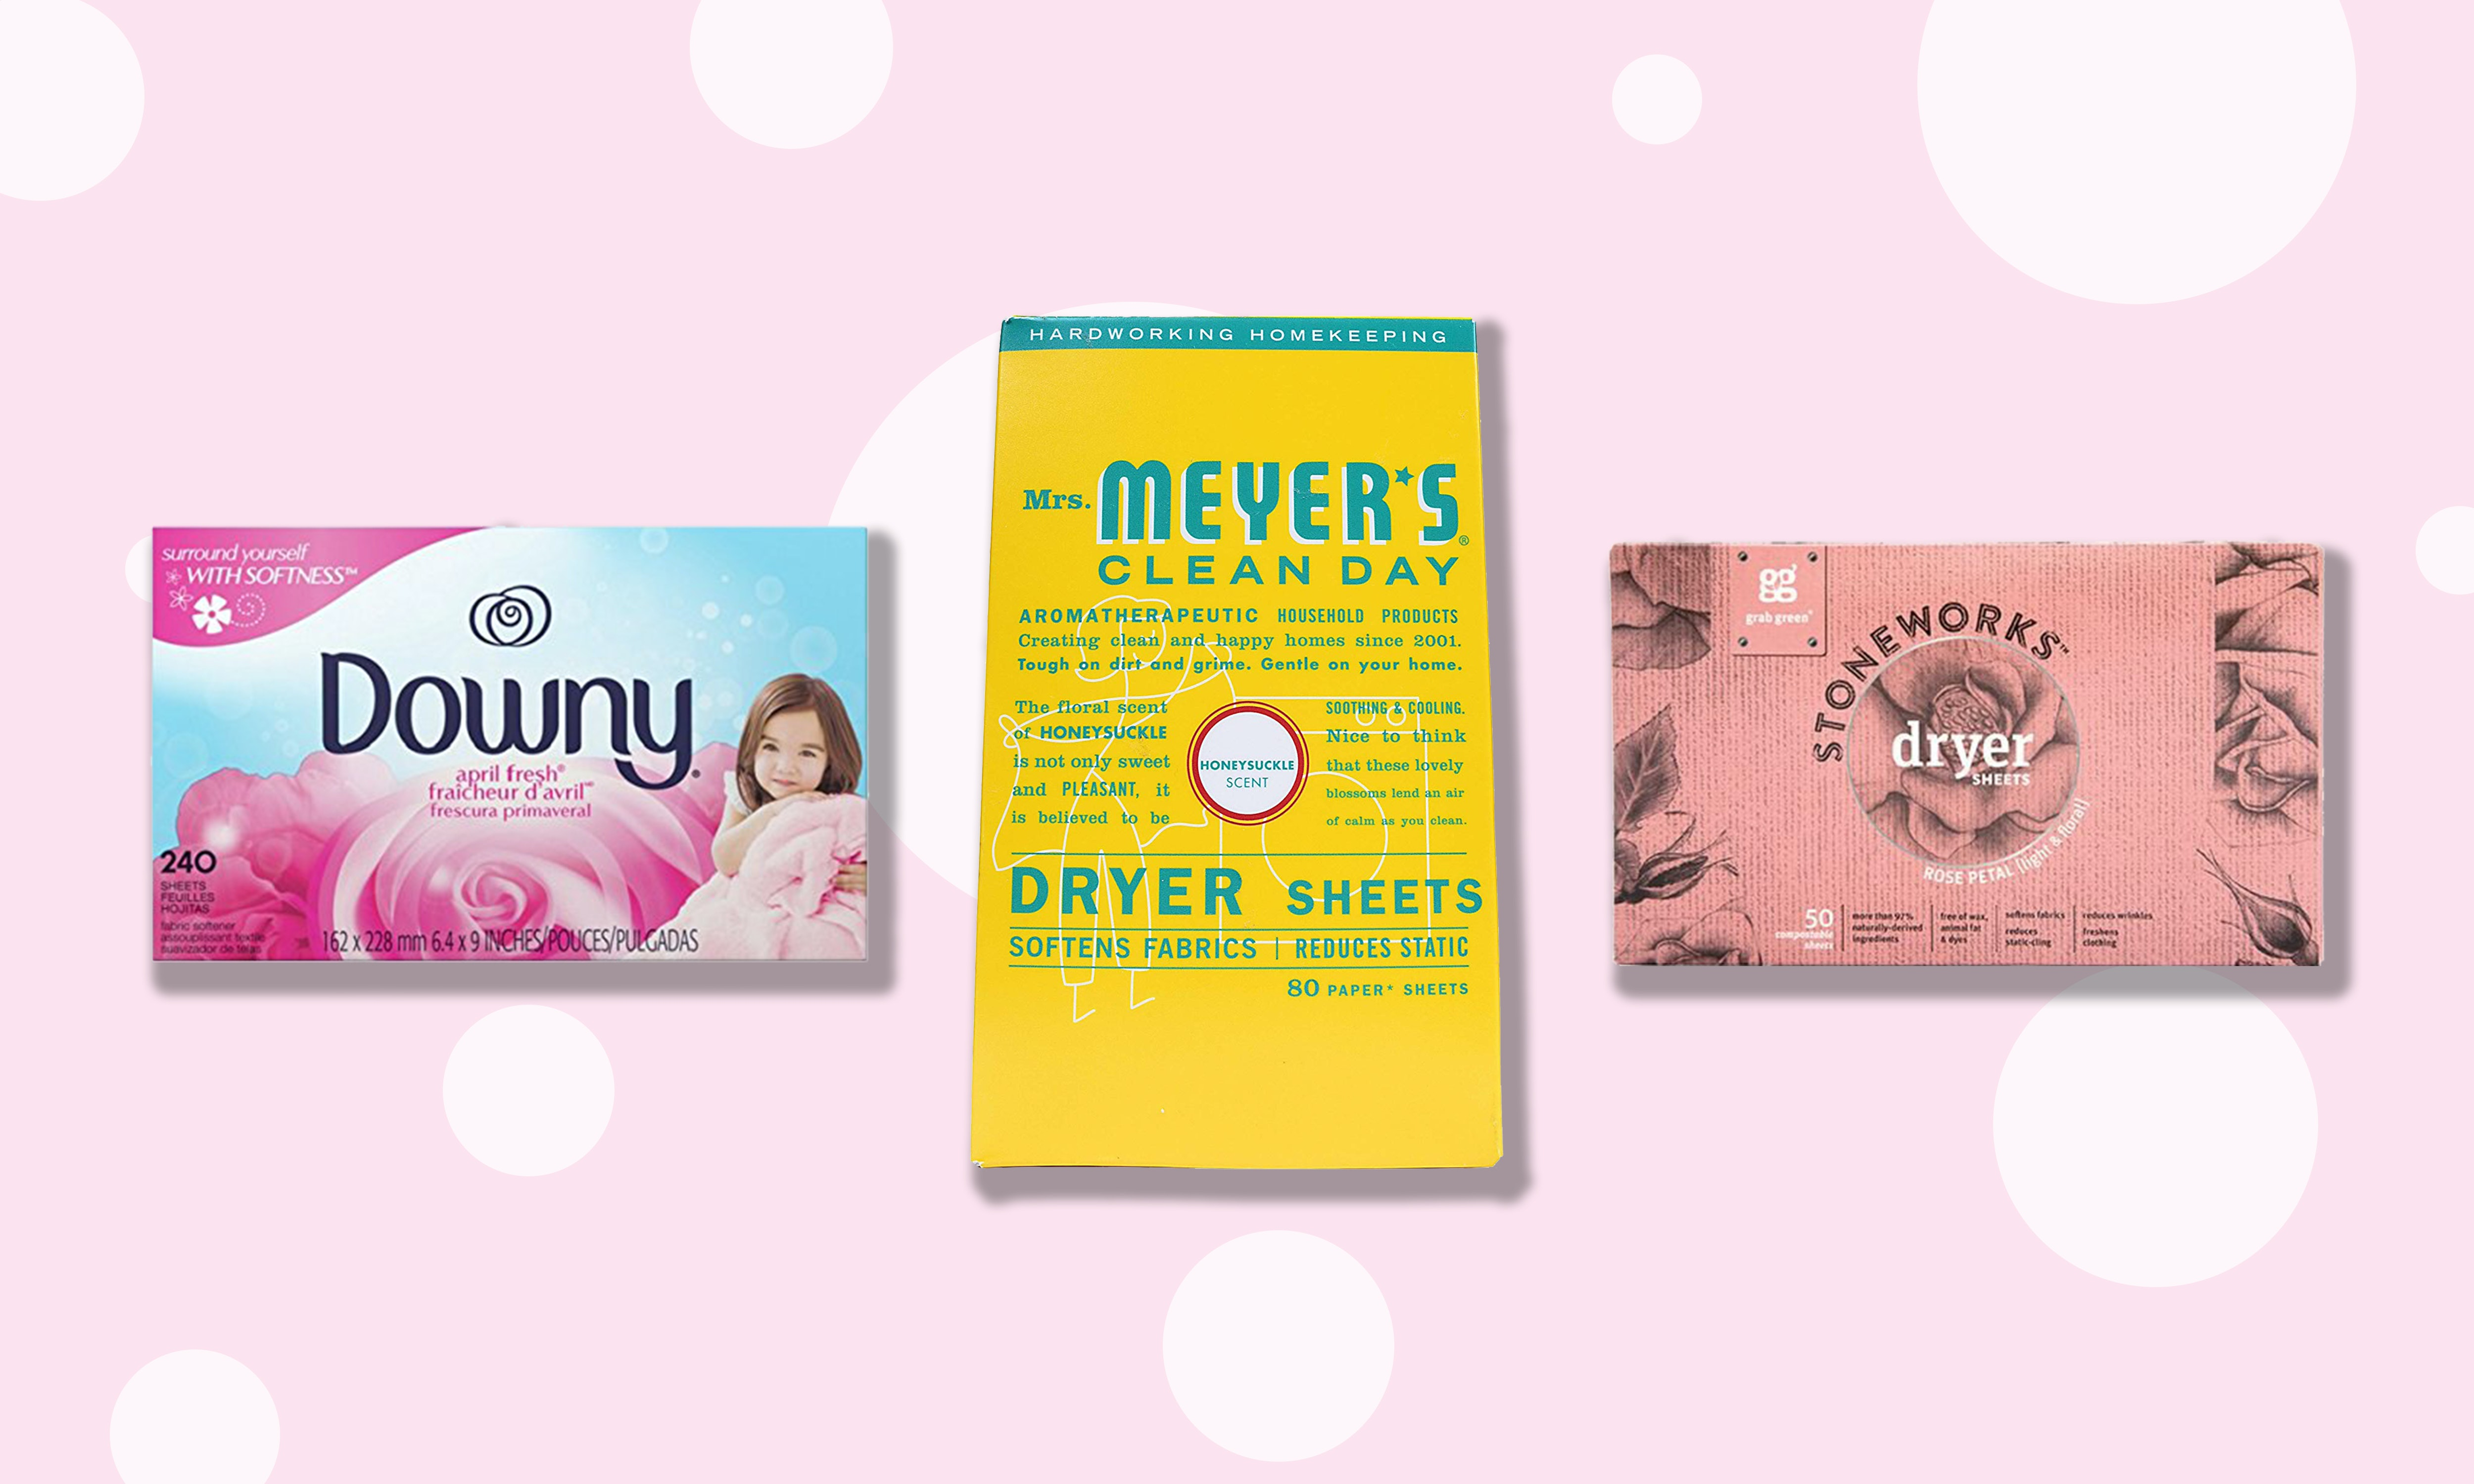 How To Make Your Clothes Smell Good In The Dryer the 3 best-smelling dryer sheets